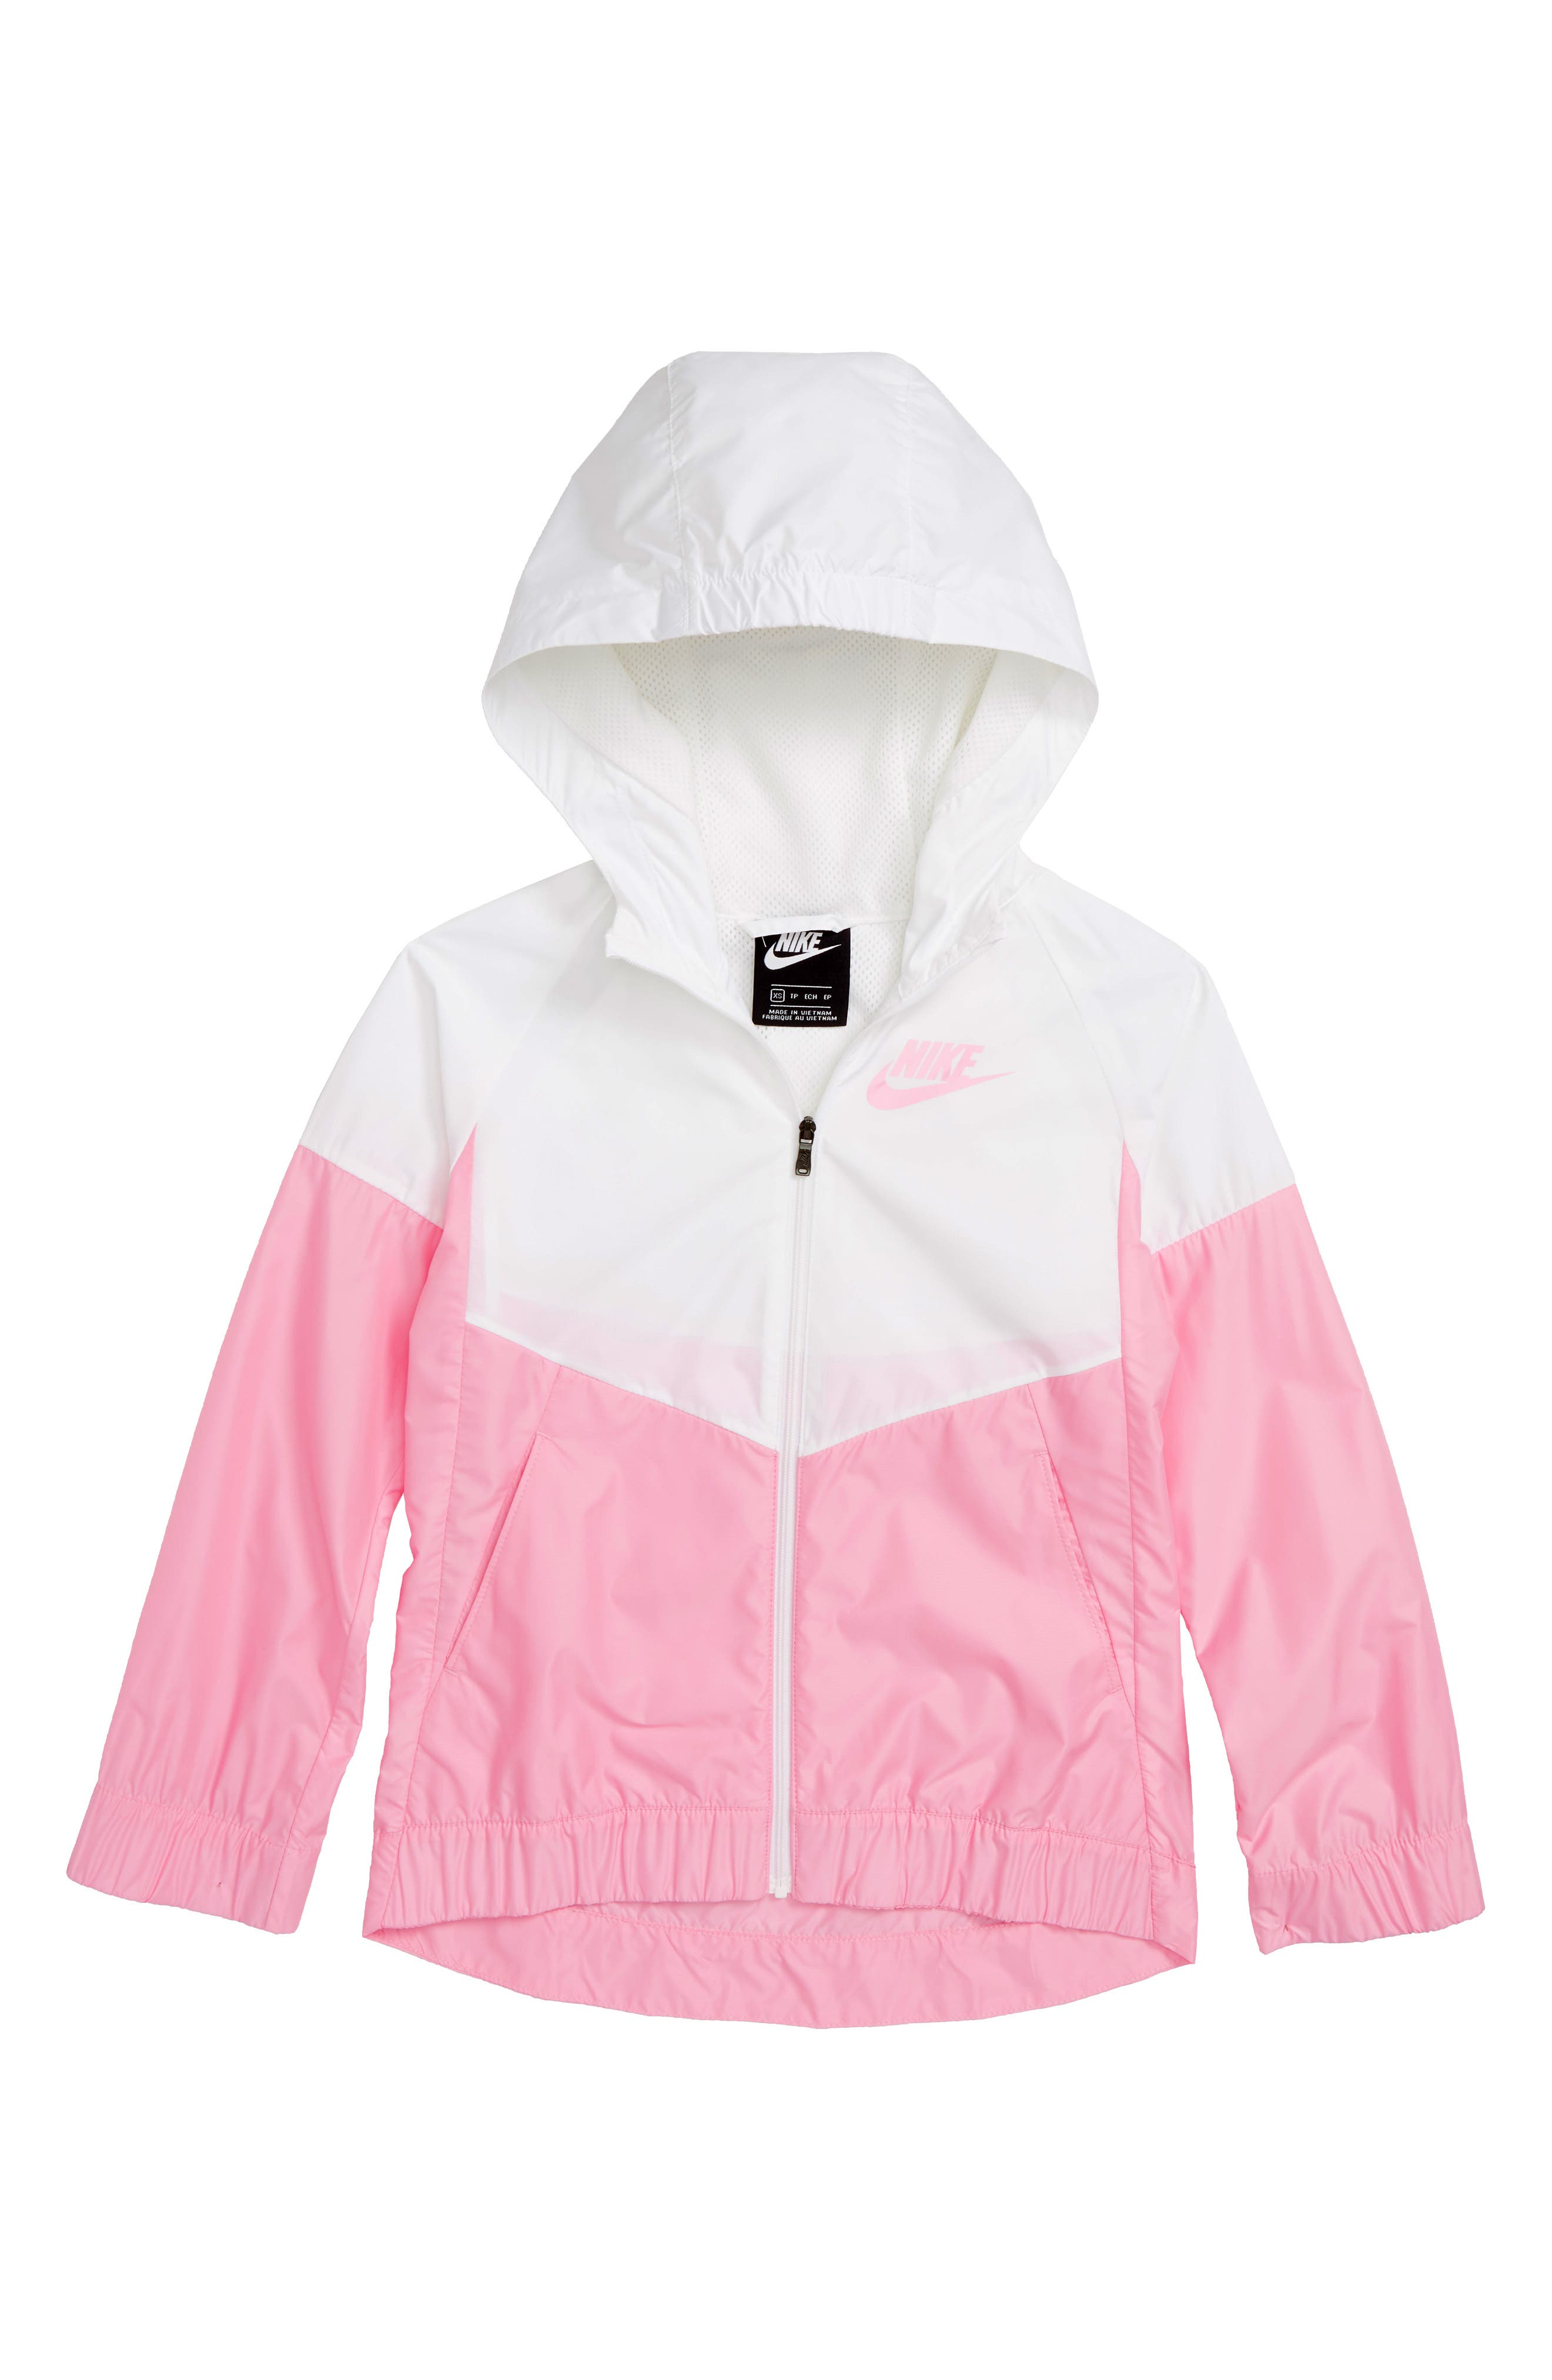 Sportswear Windrunner Jacket,                         Main,                         color, White/ Pink/ Pink